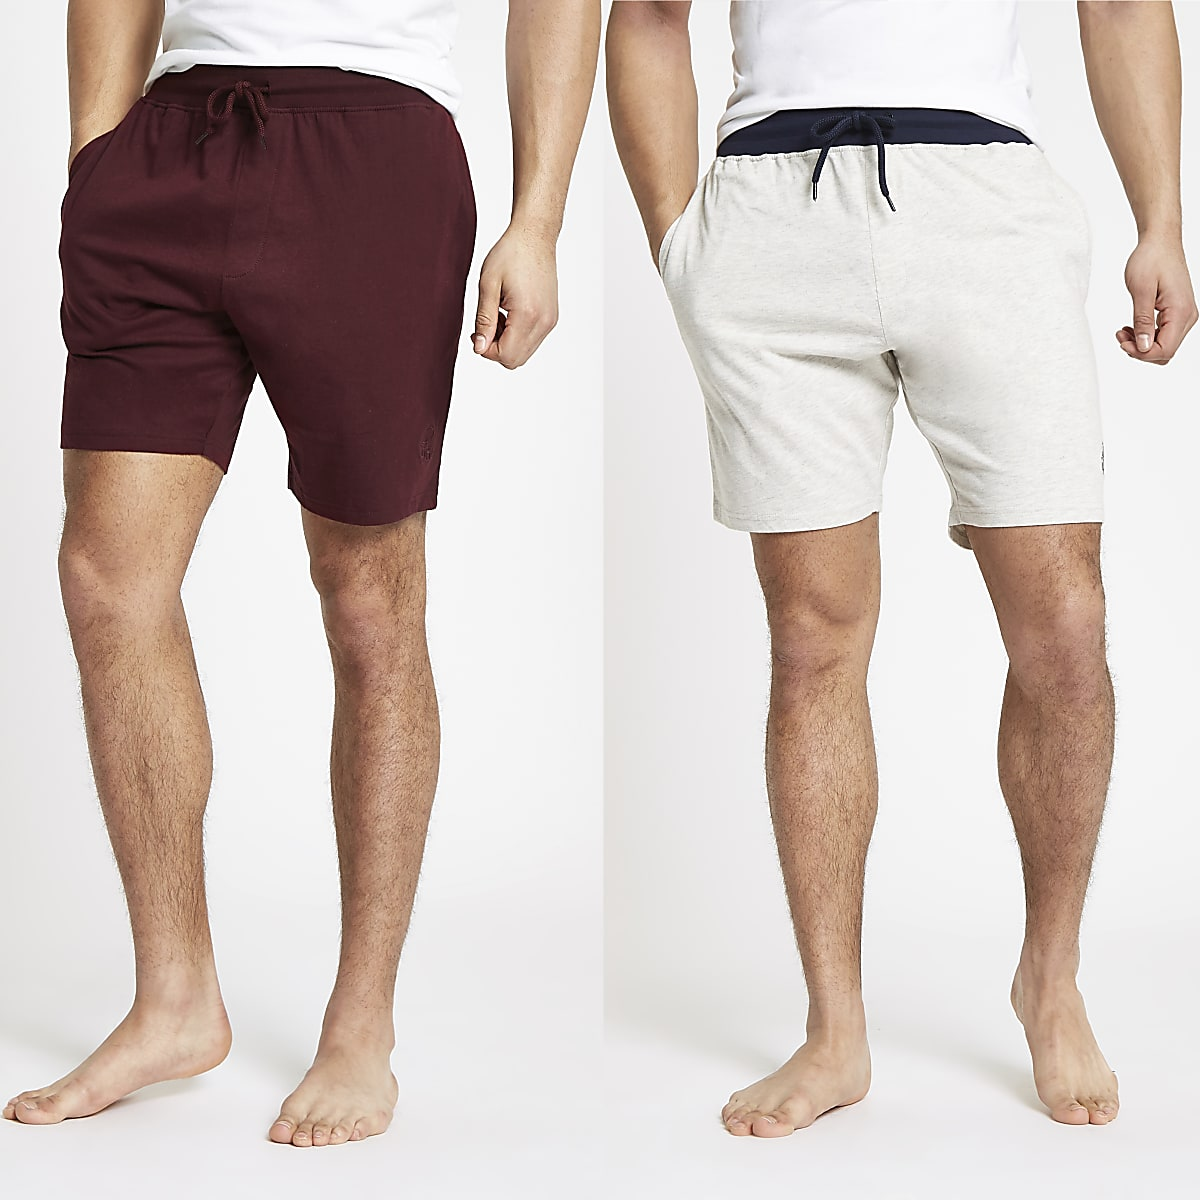 Red and grey R96 shorts 2 pack